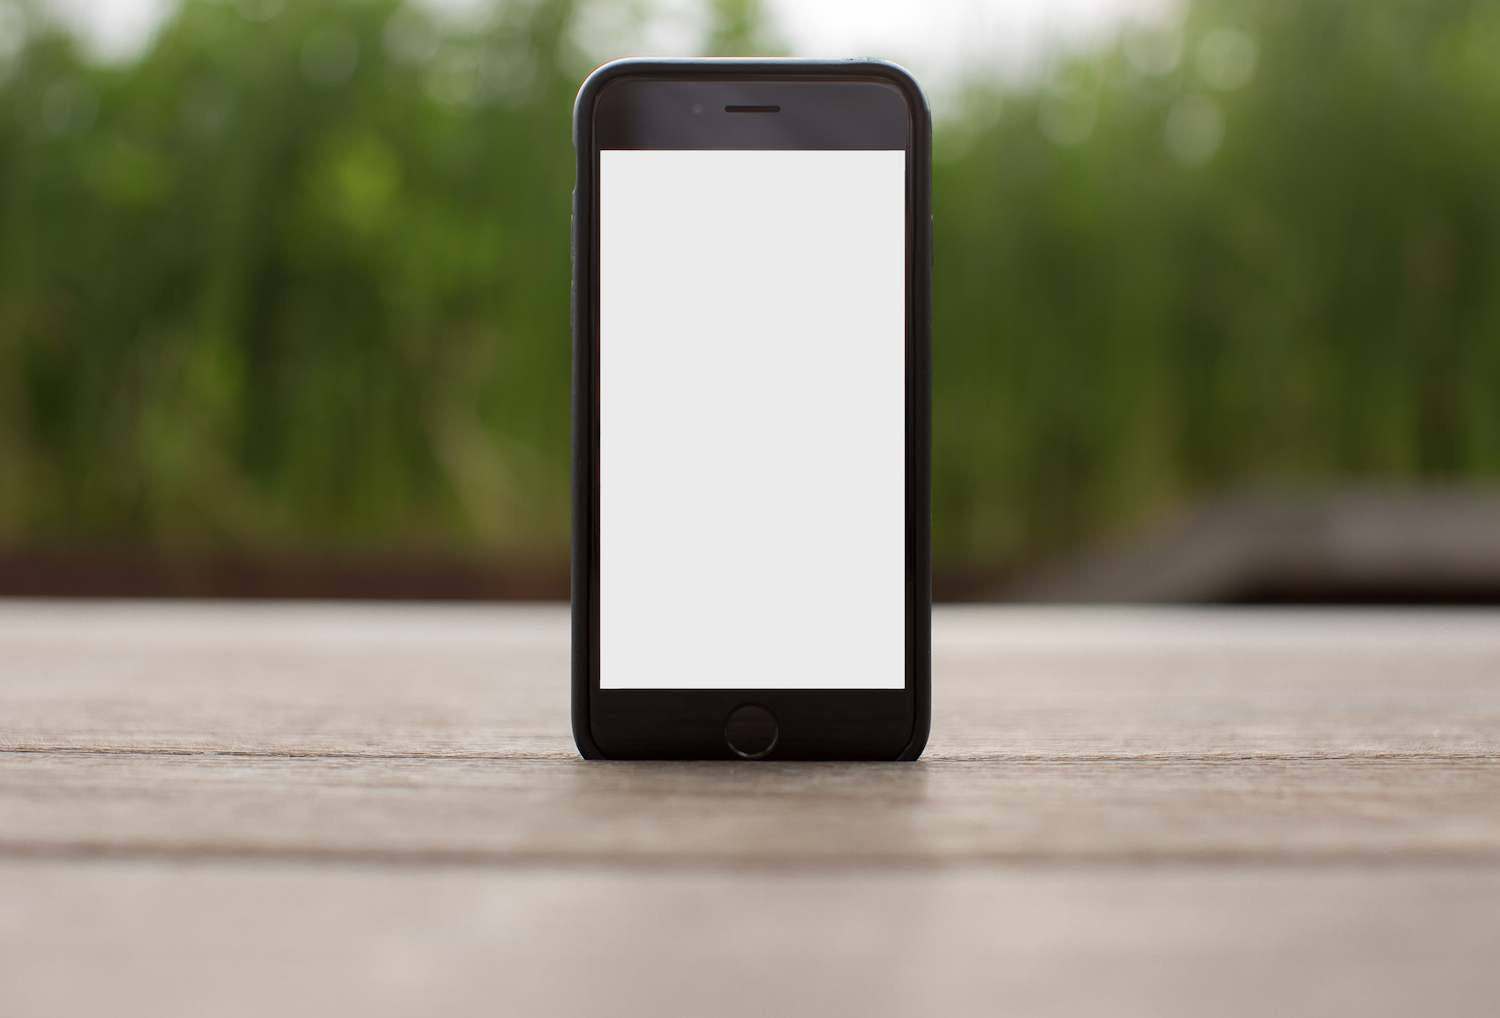 Mobile smart phone with blank screen on the table outdoor example image 1